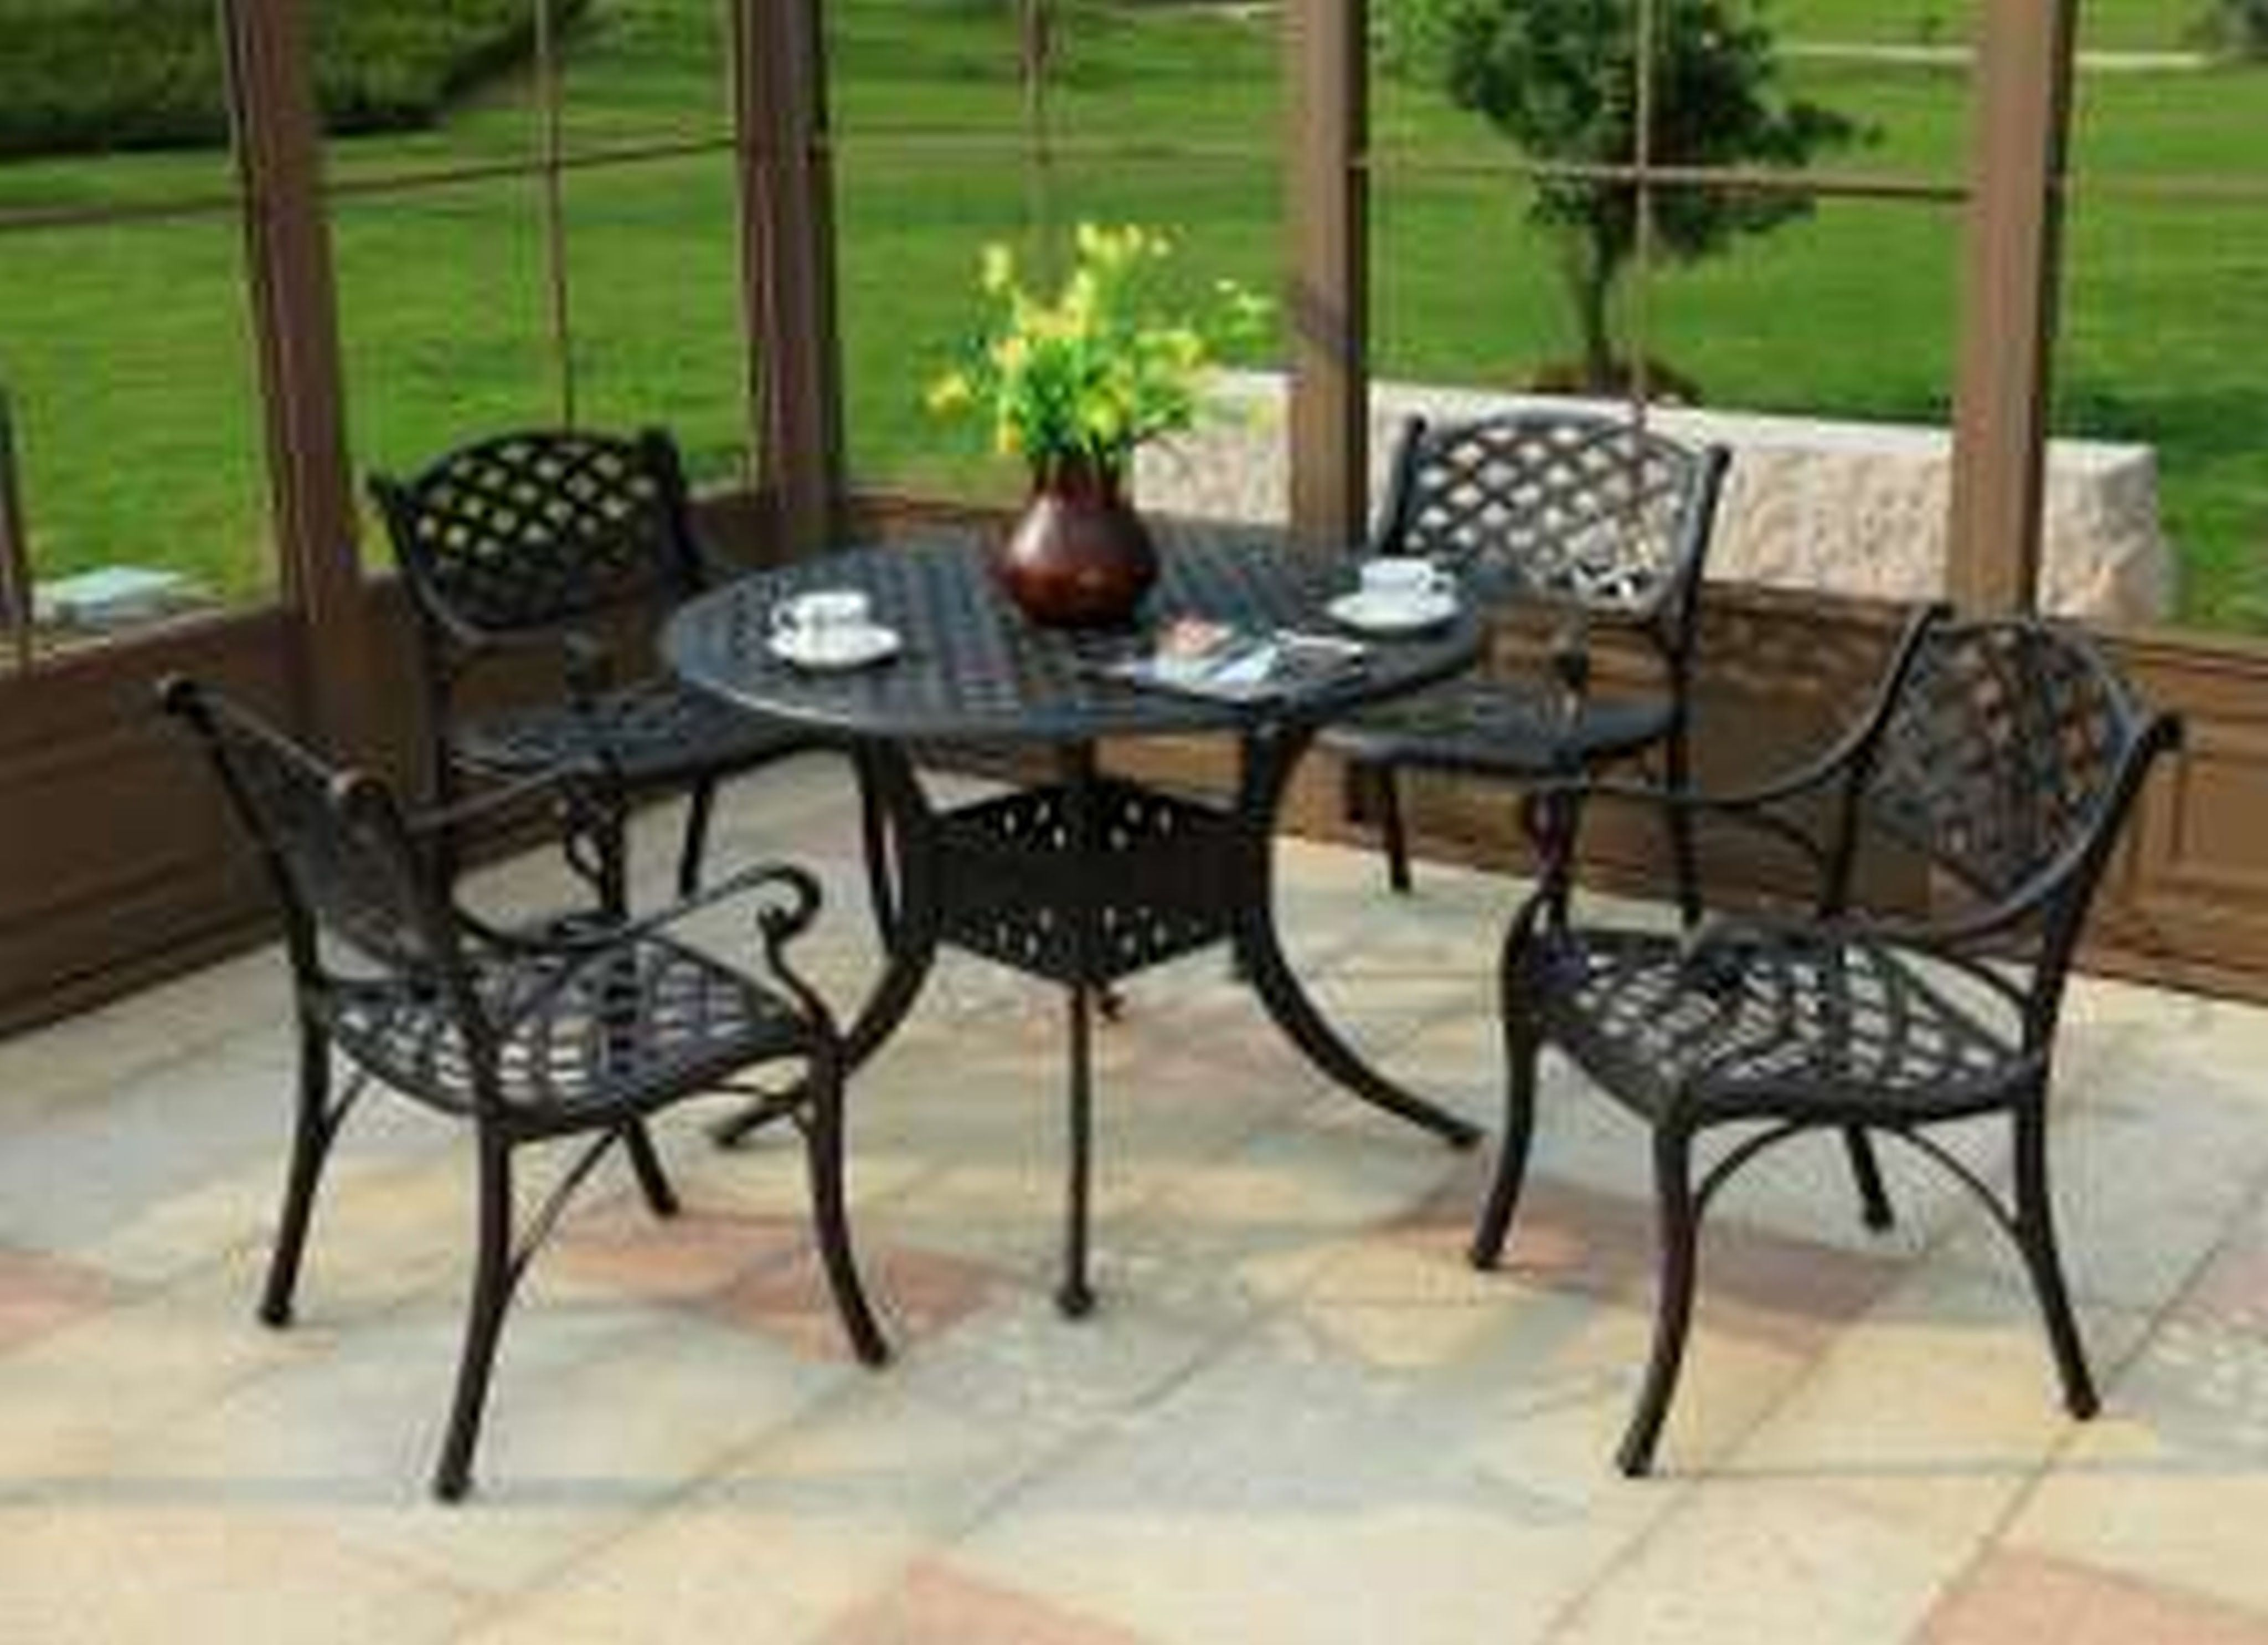 Patio Tables And Chairs Buying Guide In 2020 Iron Patio Furniture Cheap Patio Furniture Outdoor Furniture